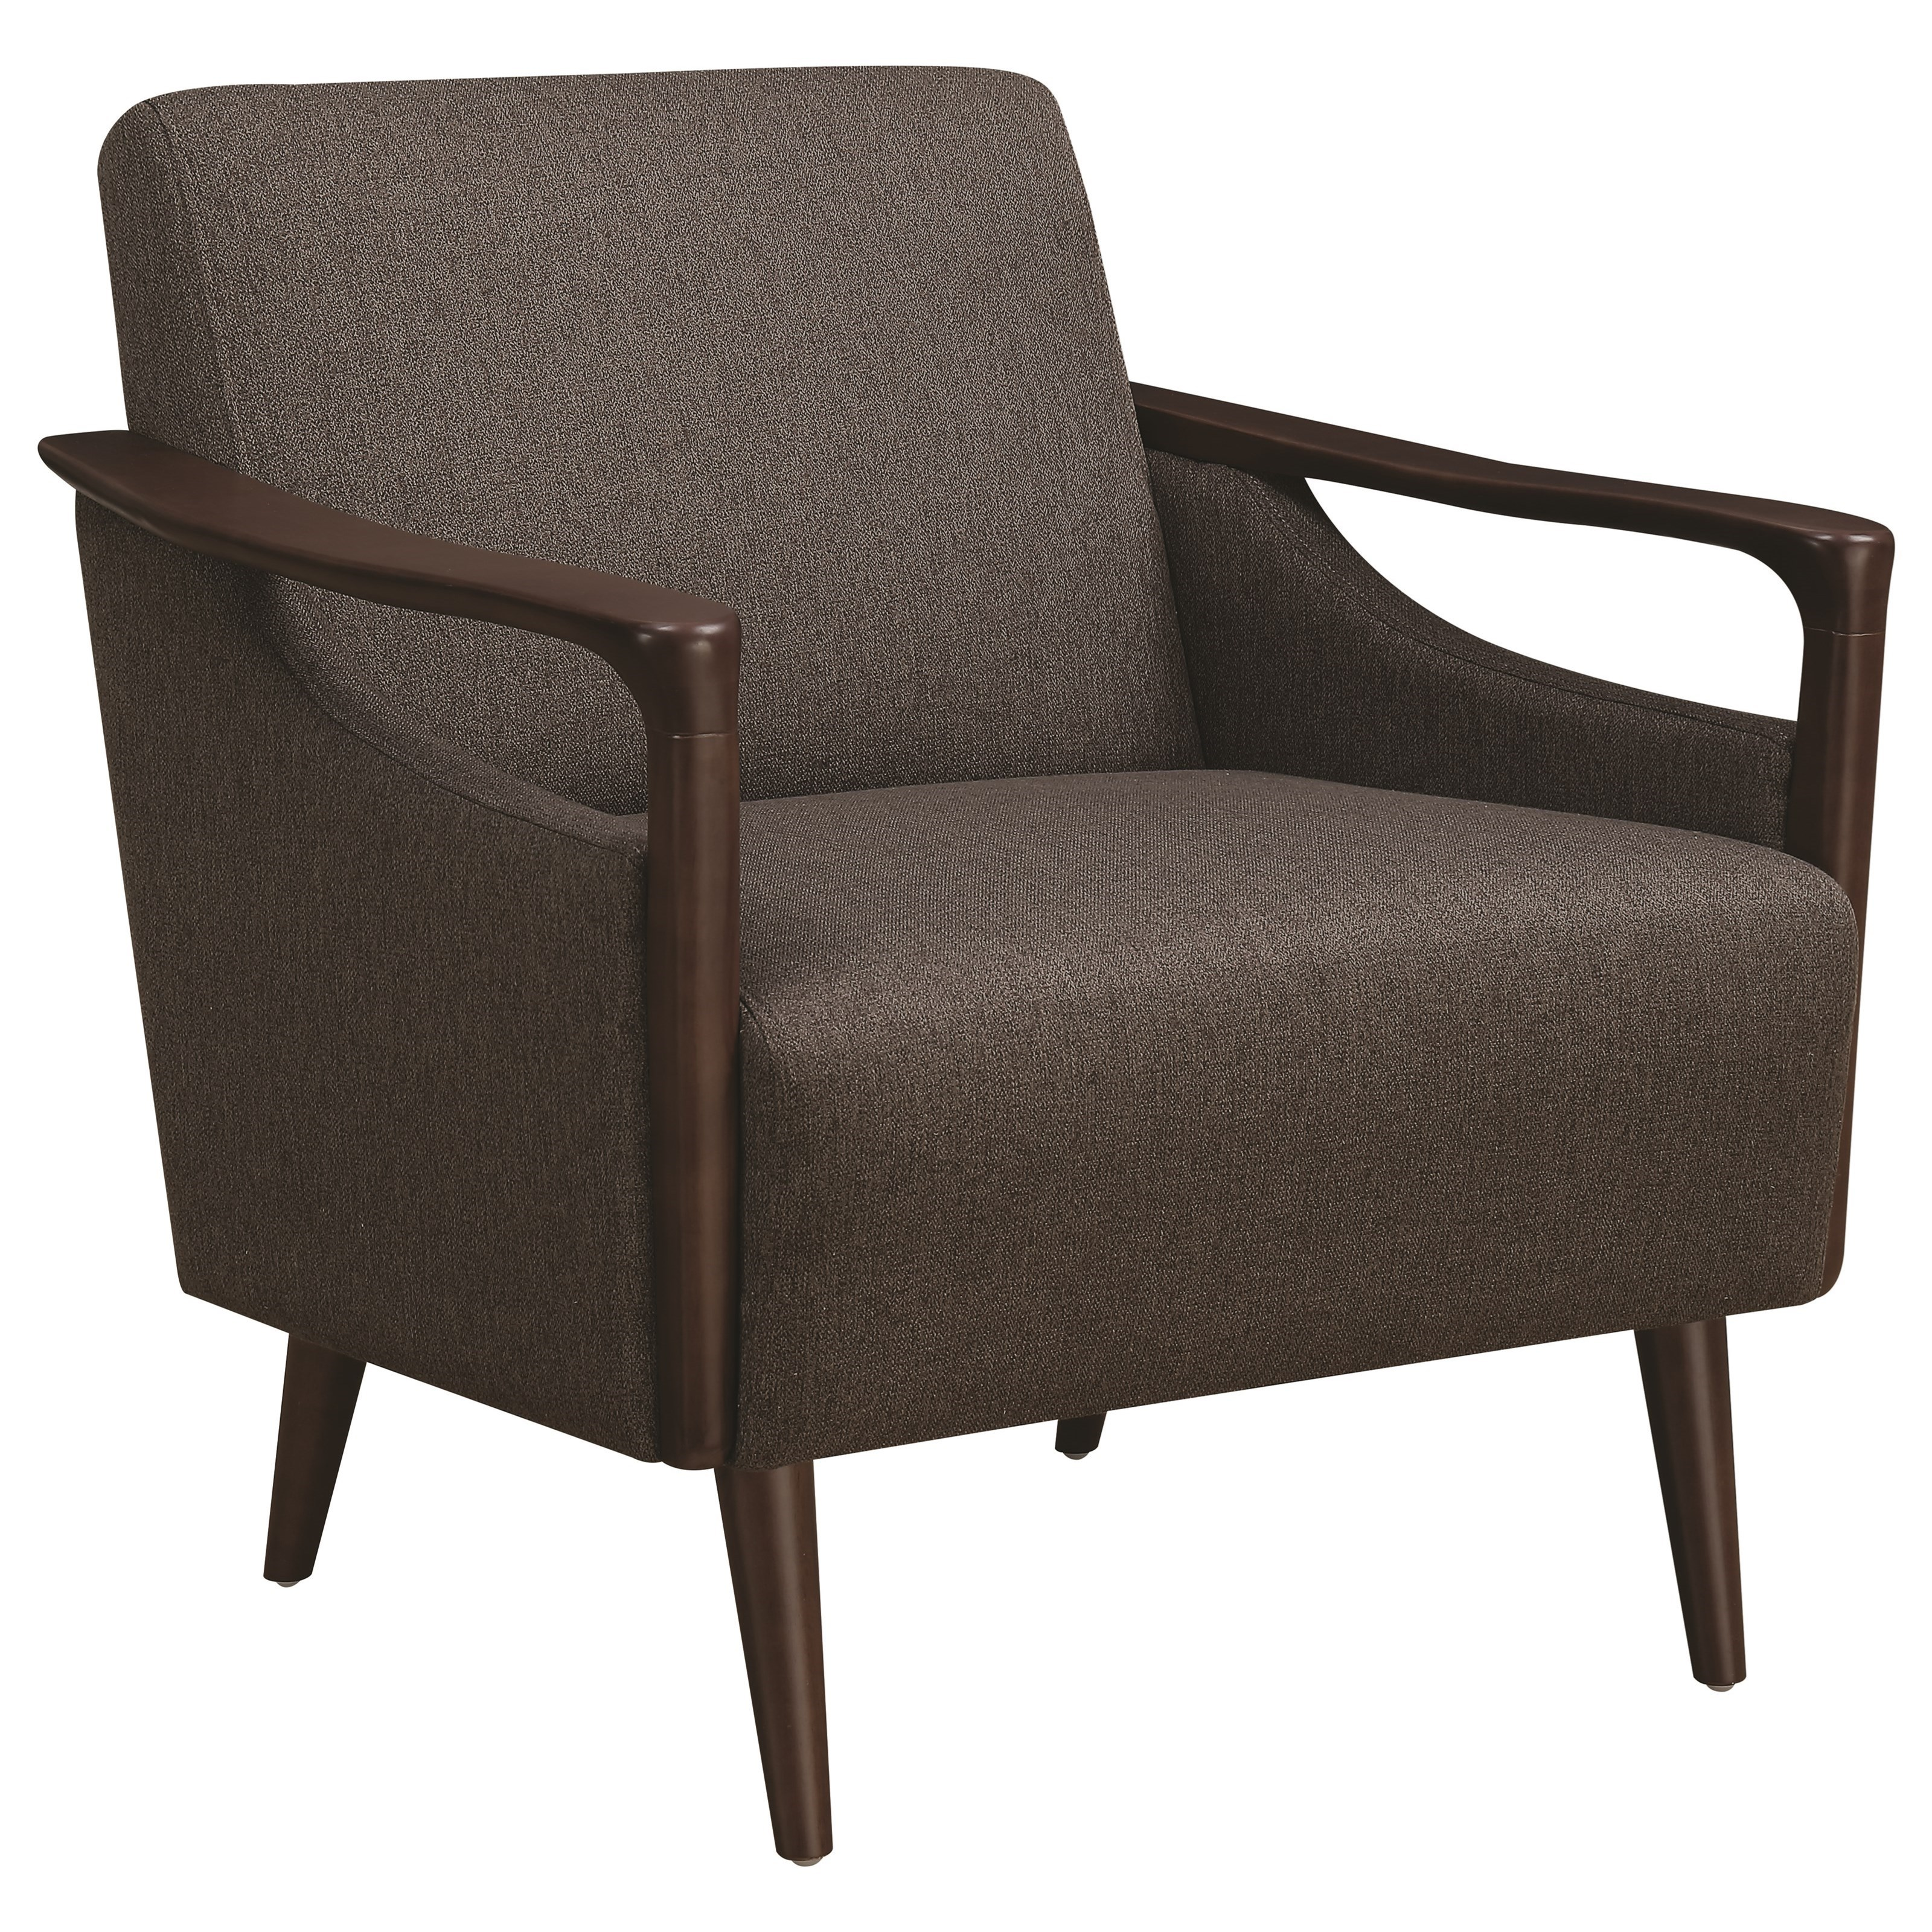 Scott Living 90404 Accent Chair - Item Number: 904045